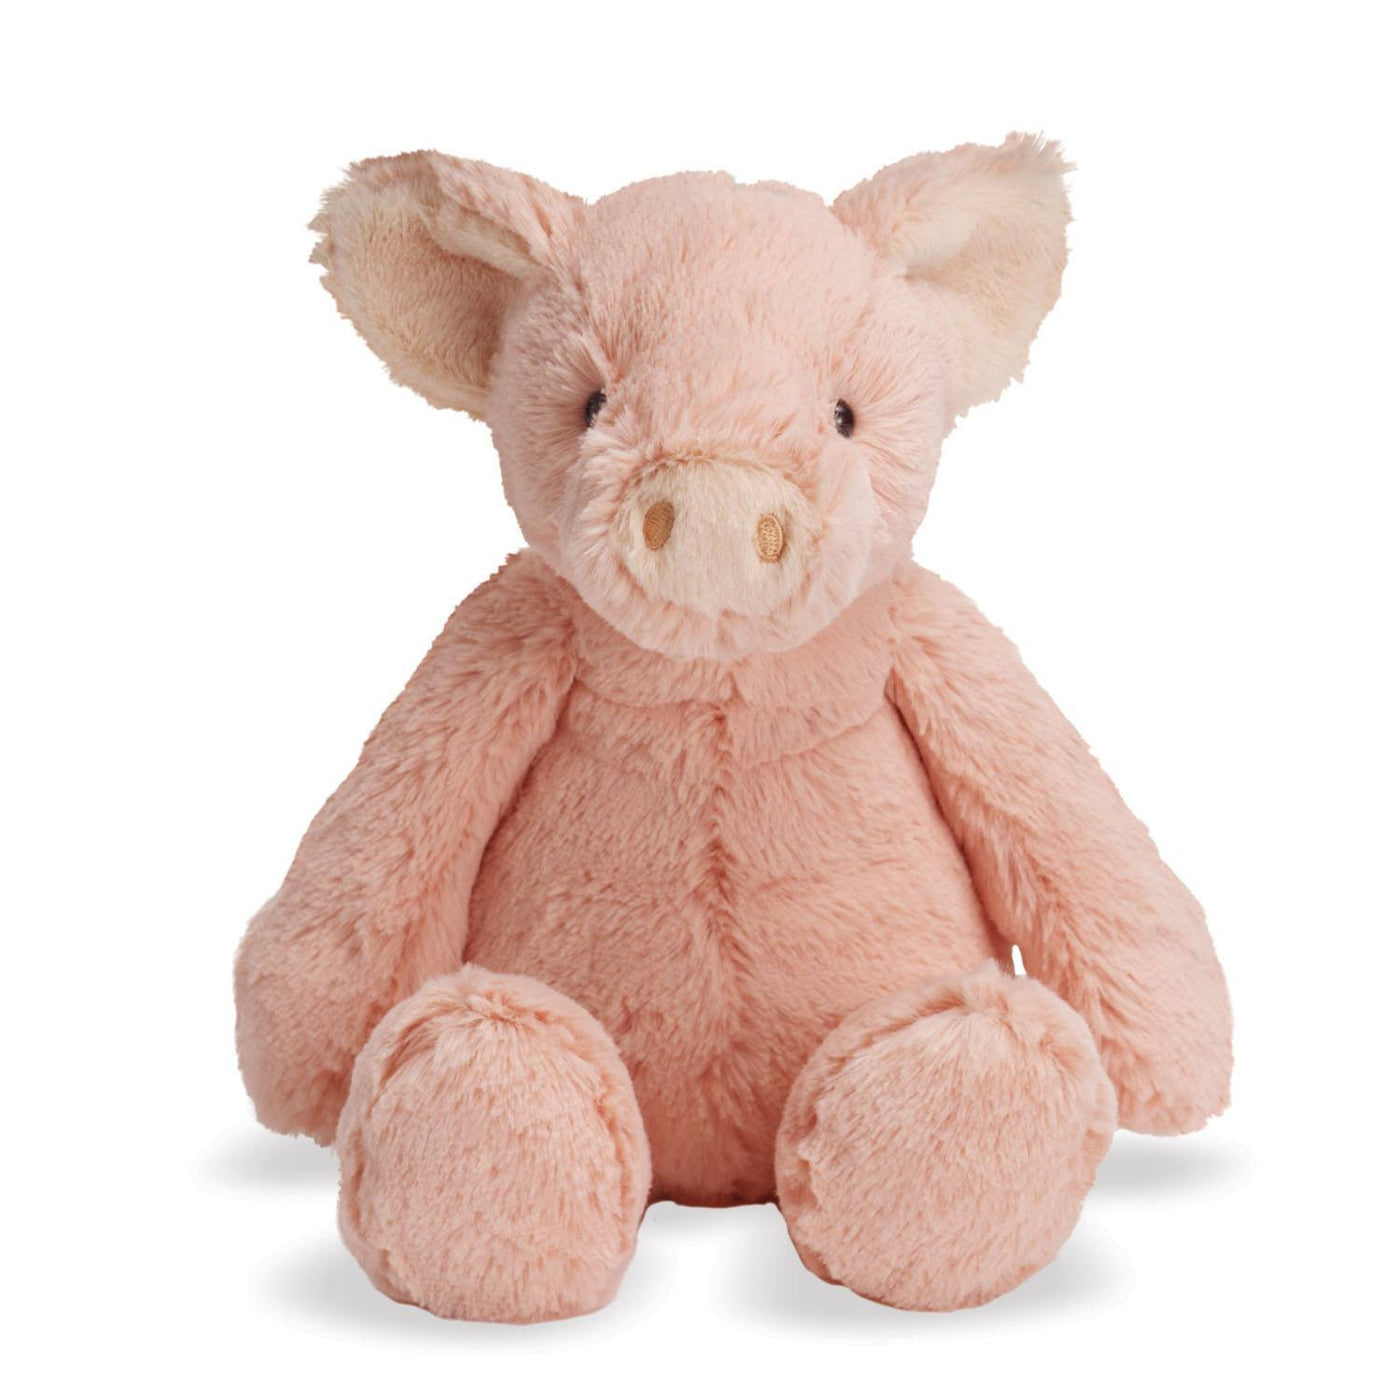 Lovelies - Piper Pig Medium - Manhattan Toy